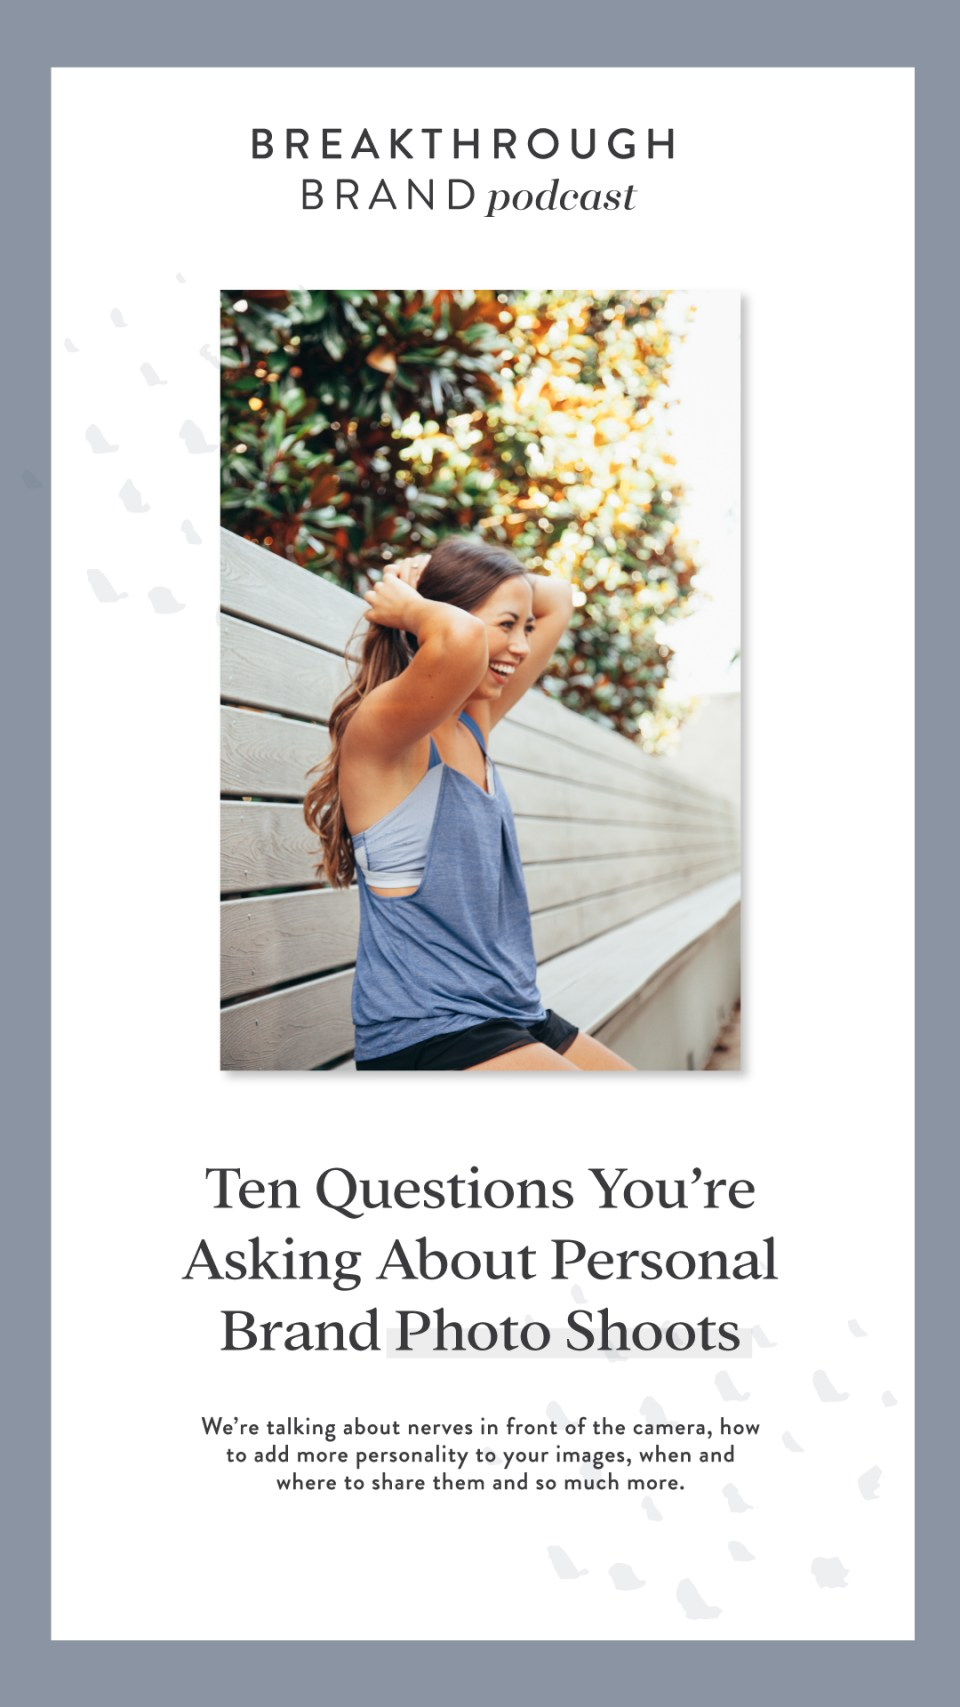 10 Questions You're Asking About Personal Brand Photo Shoots: Breakthrough Brand Pocdast